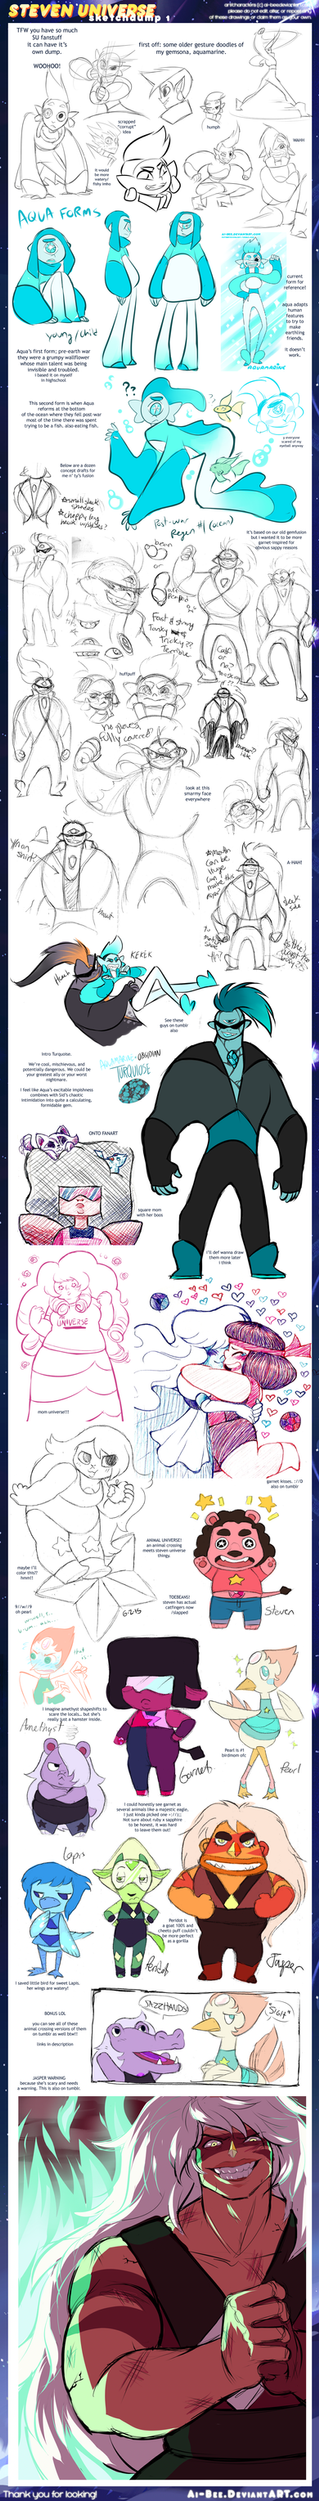 Steven Universe Sketchdump 1 by Ai-Bee